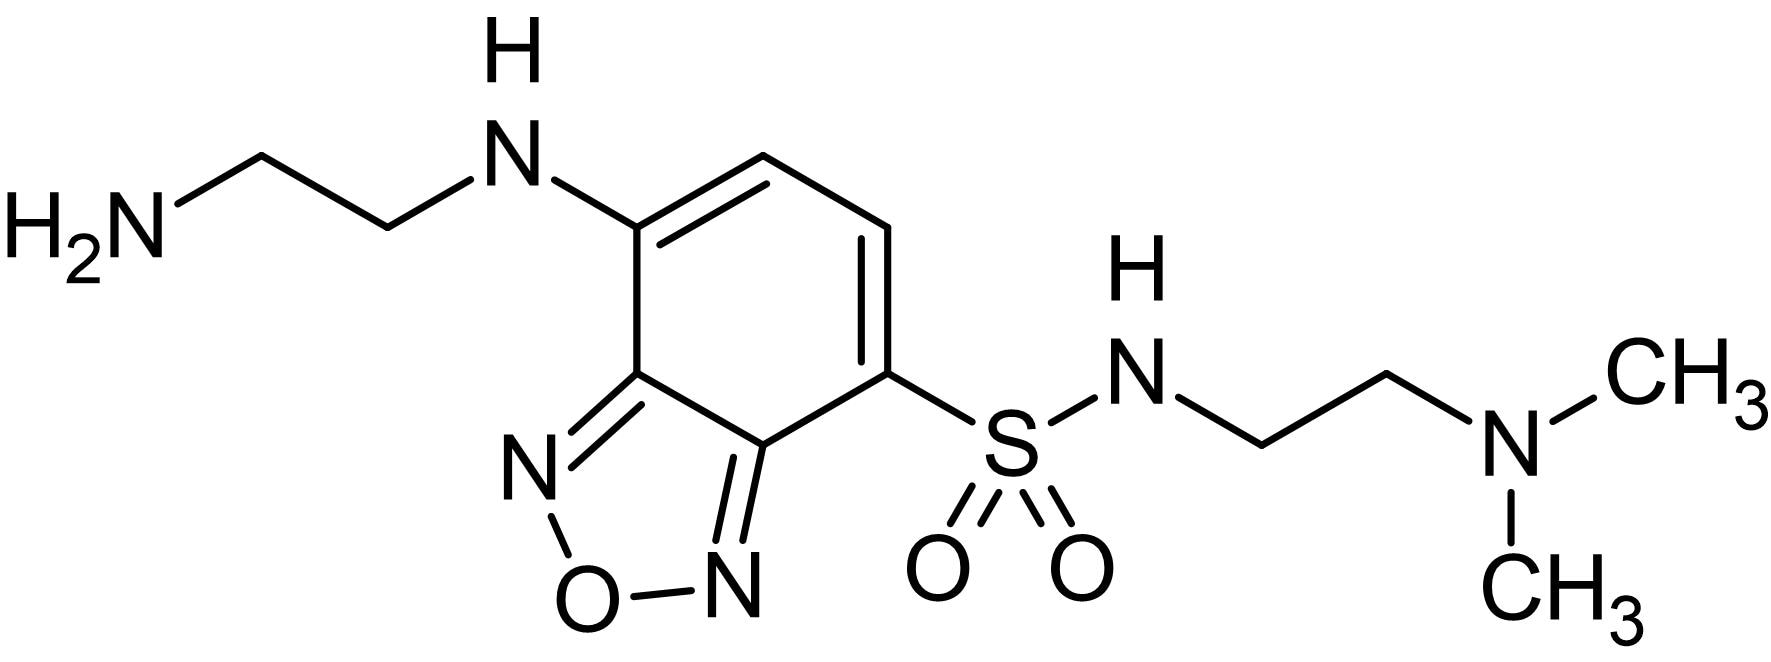 Chemical Structure - DAABD-AE, Derivatization reagent (ab145290)